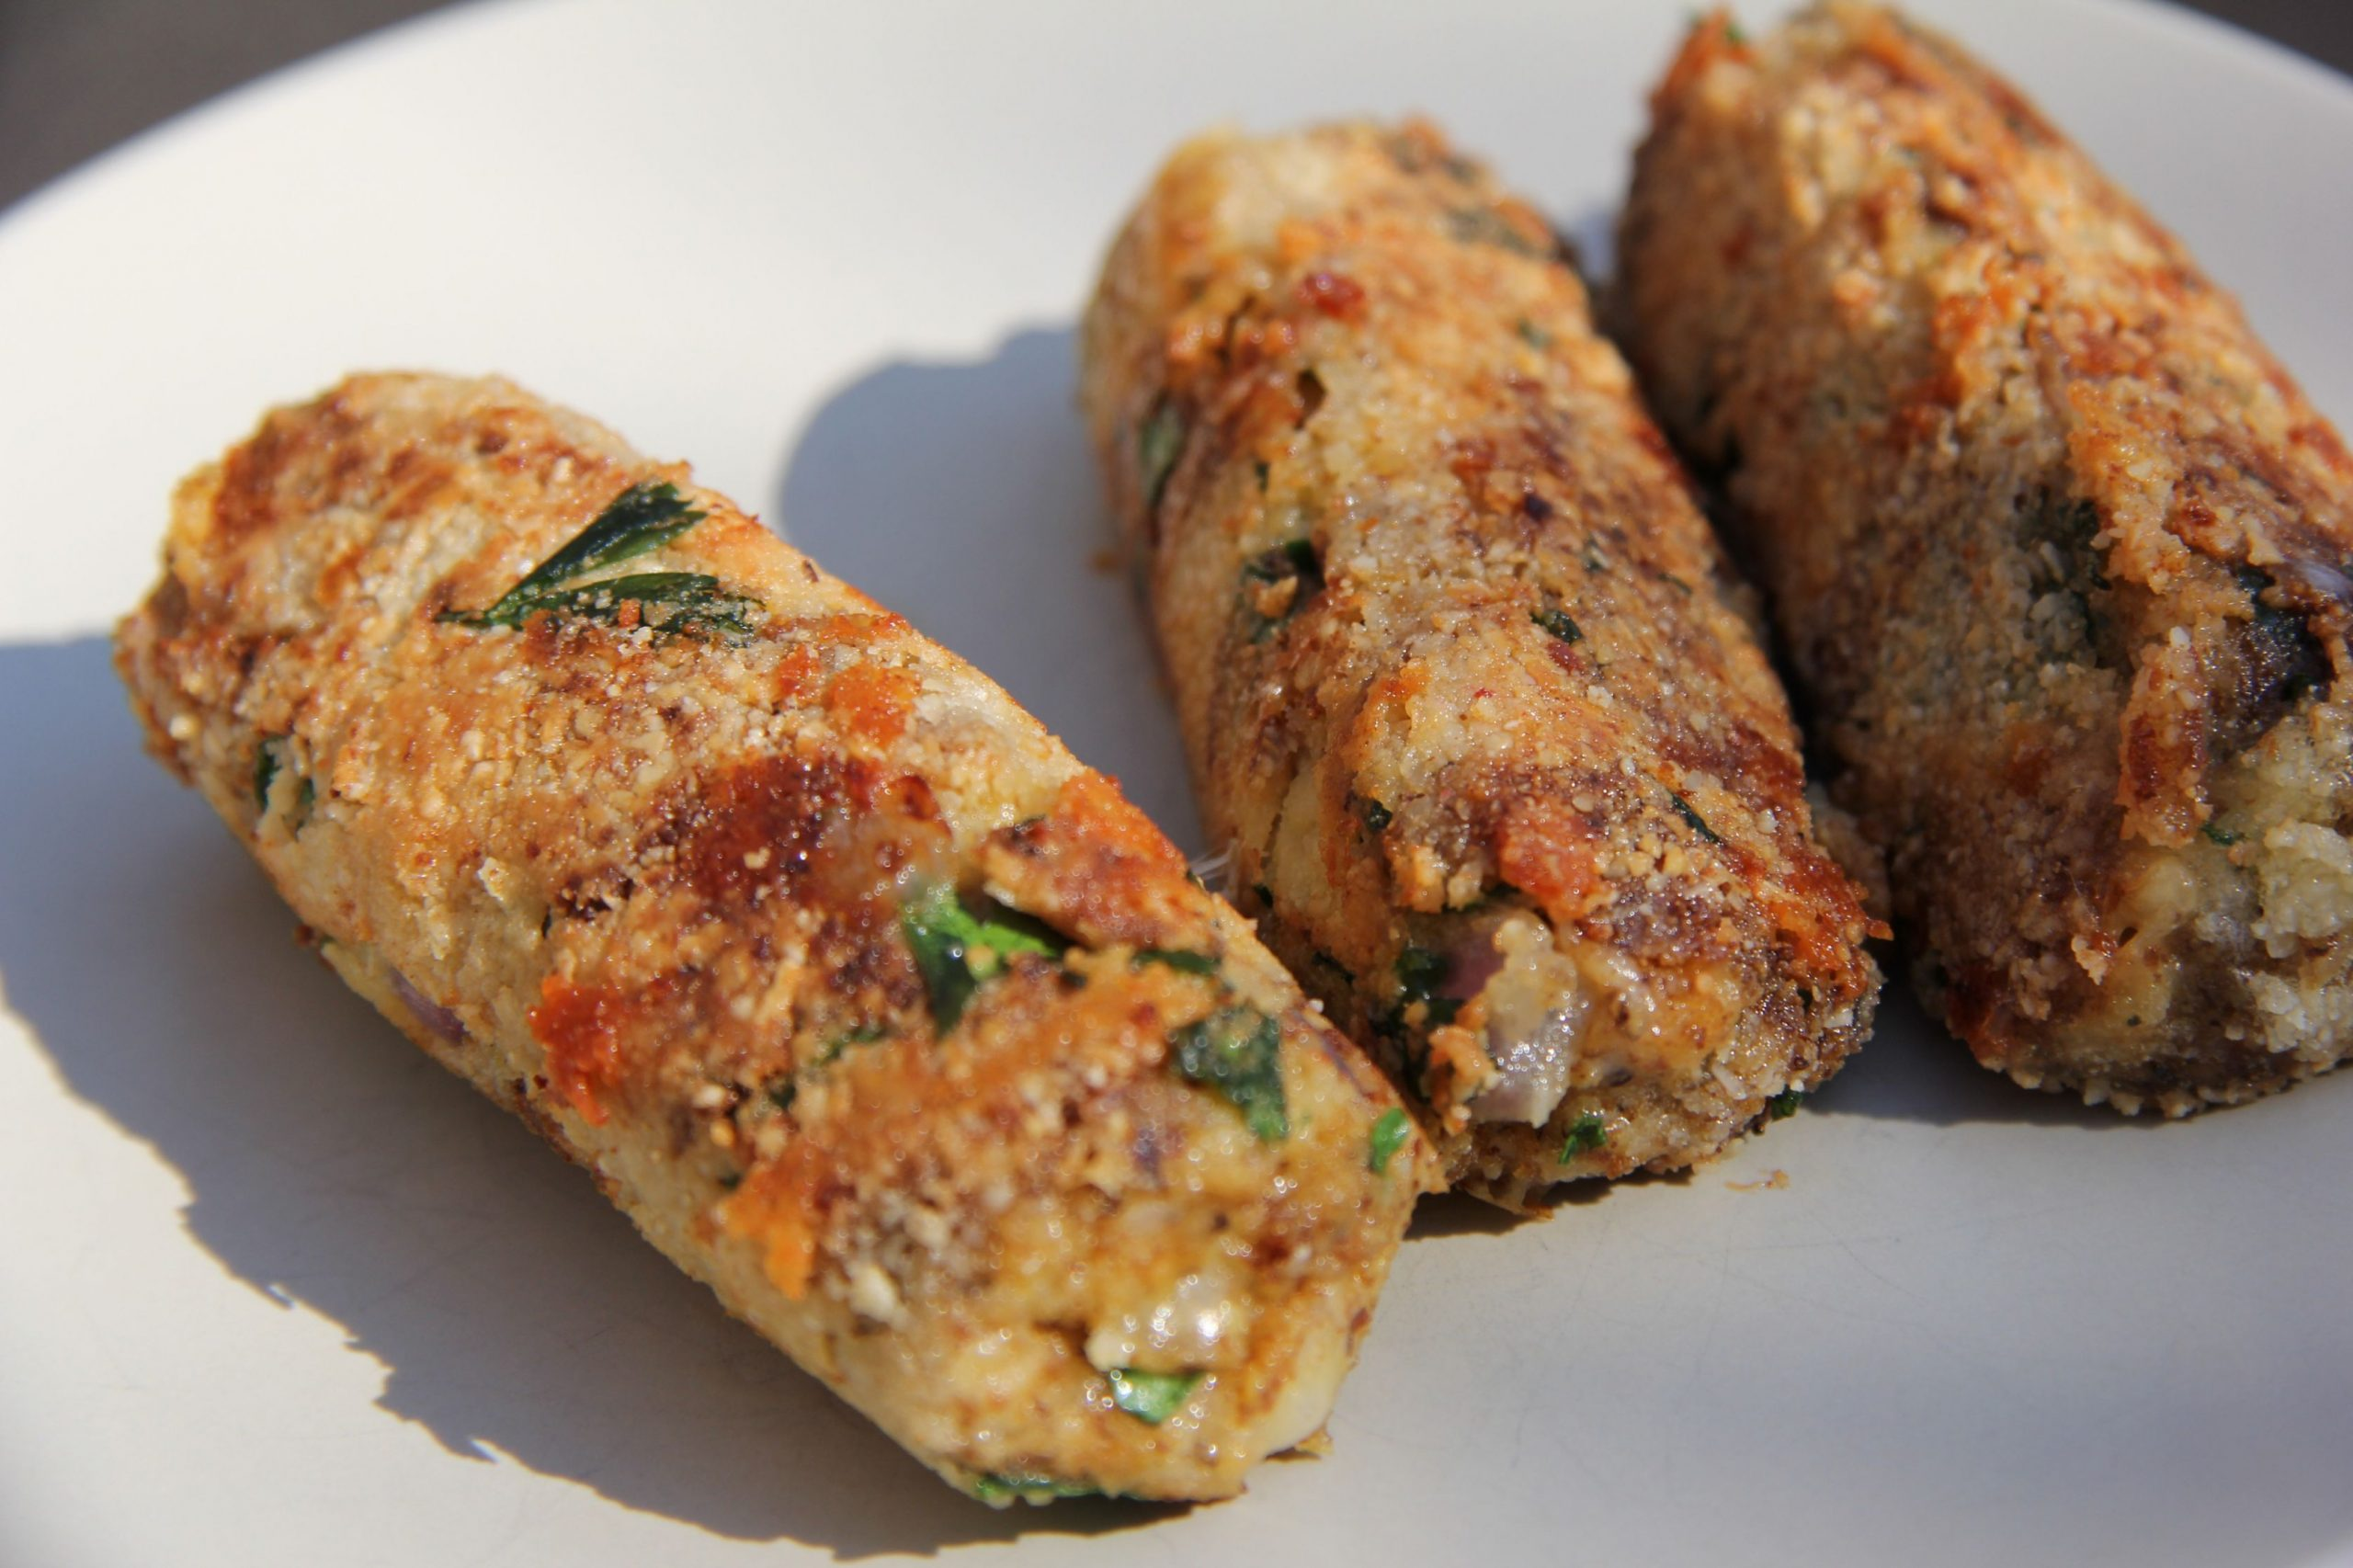 Cheese Vegetarian Sausages | Divalicious In Dubai - Recipes Vegetarian Sausages